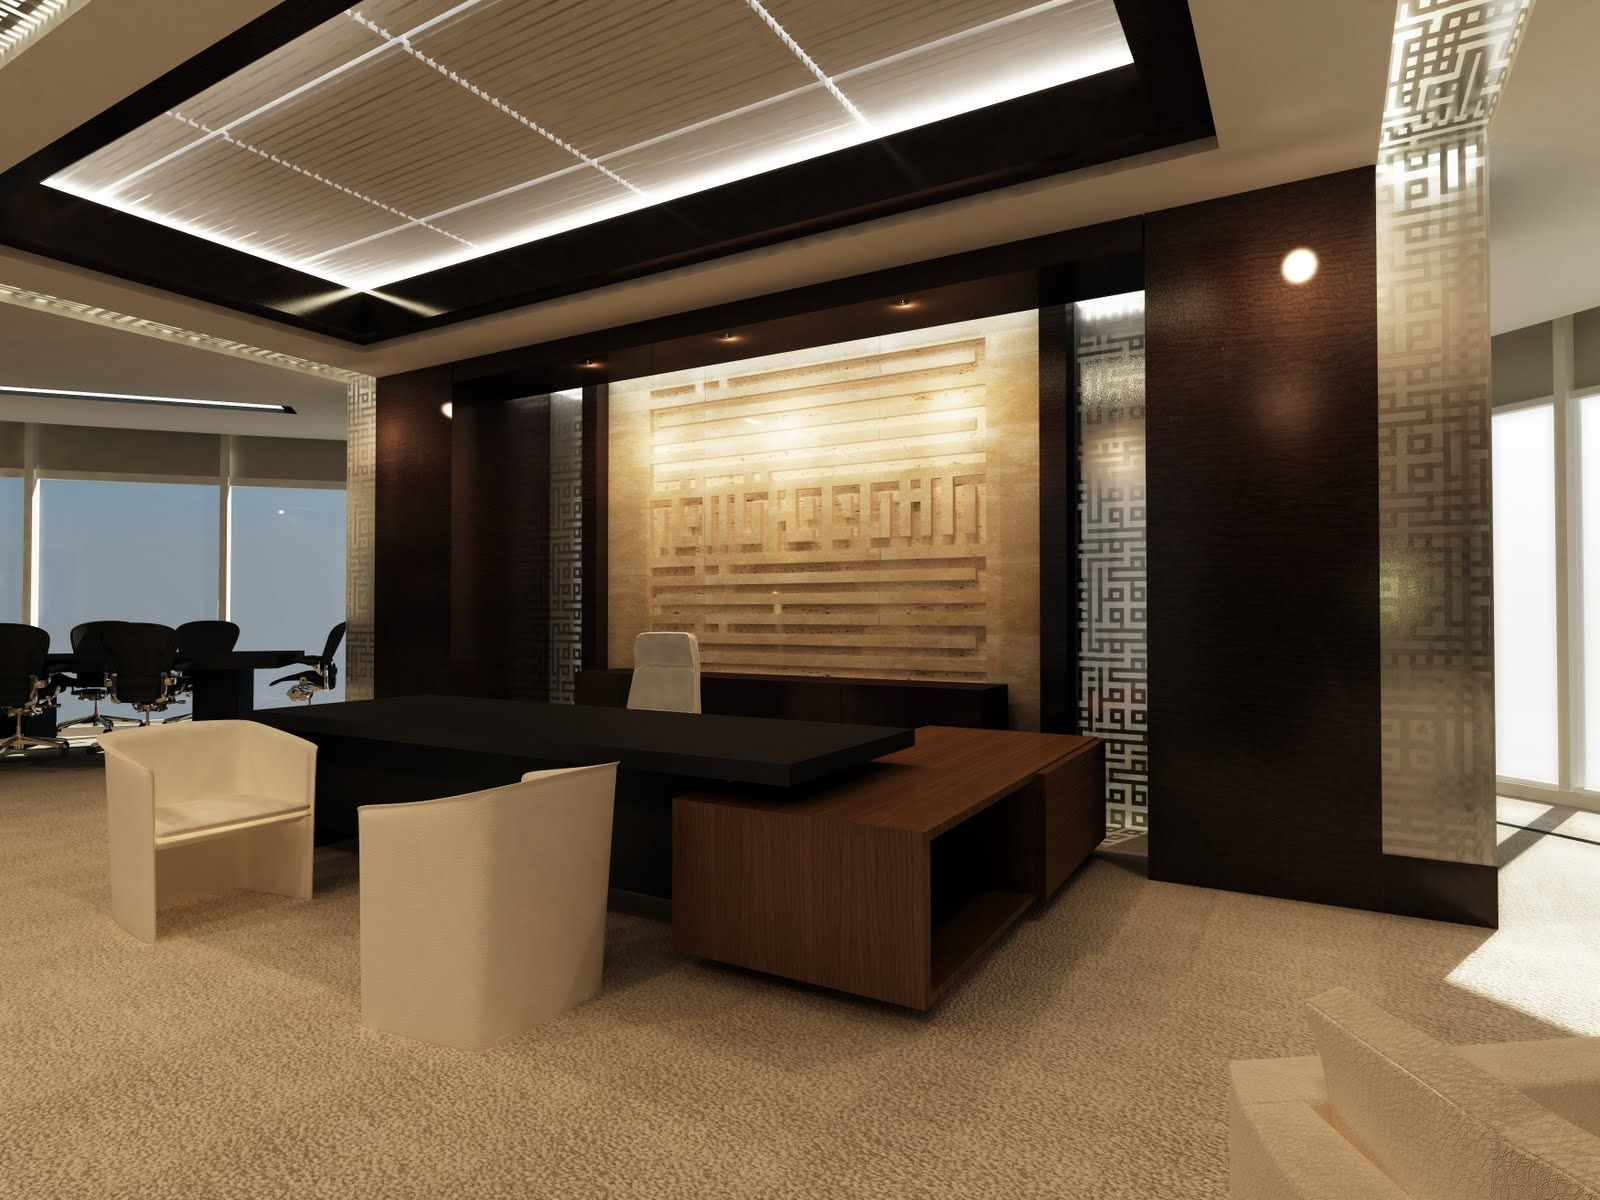 Office interior design intended for office interior design for Office interior design pictures